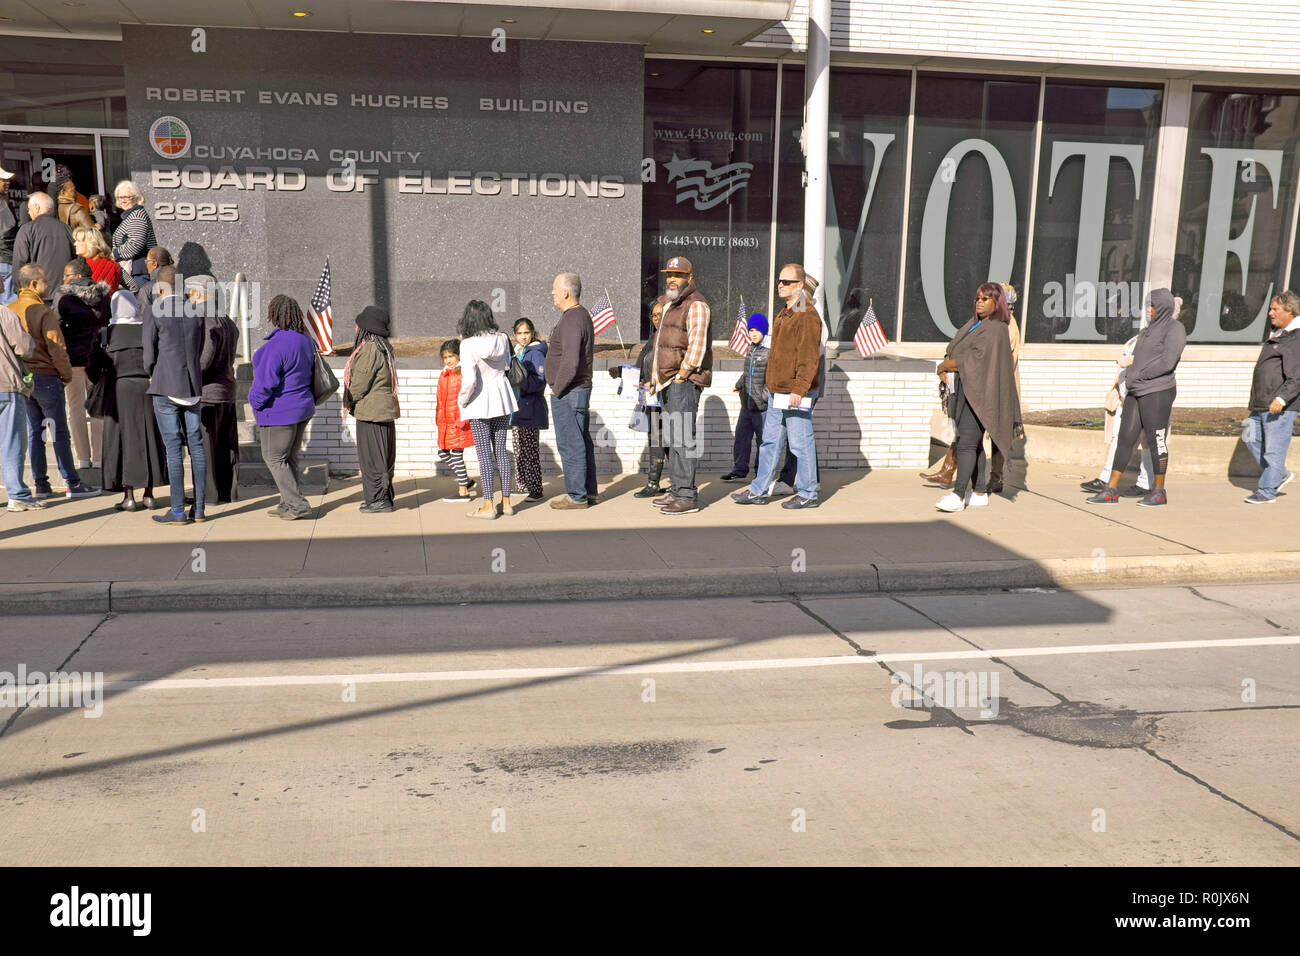 A que of voters outside the Cuyahoga County Board of Elections in downtown Cleveland, Ohio, USA wait to vote in the 2018 US Midterm elections. - Stock Image